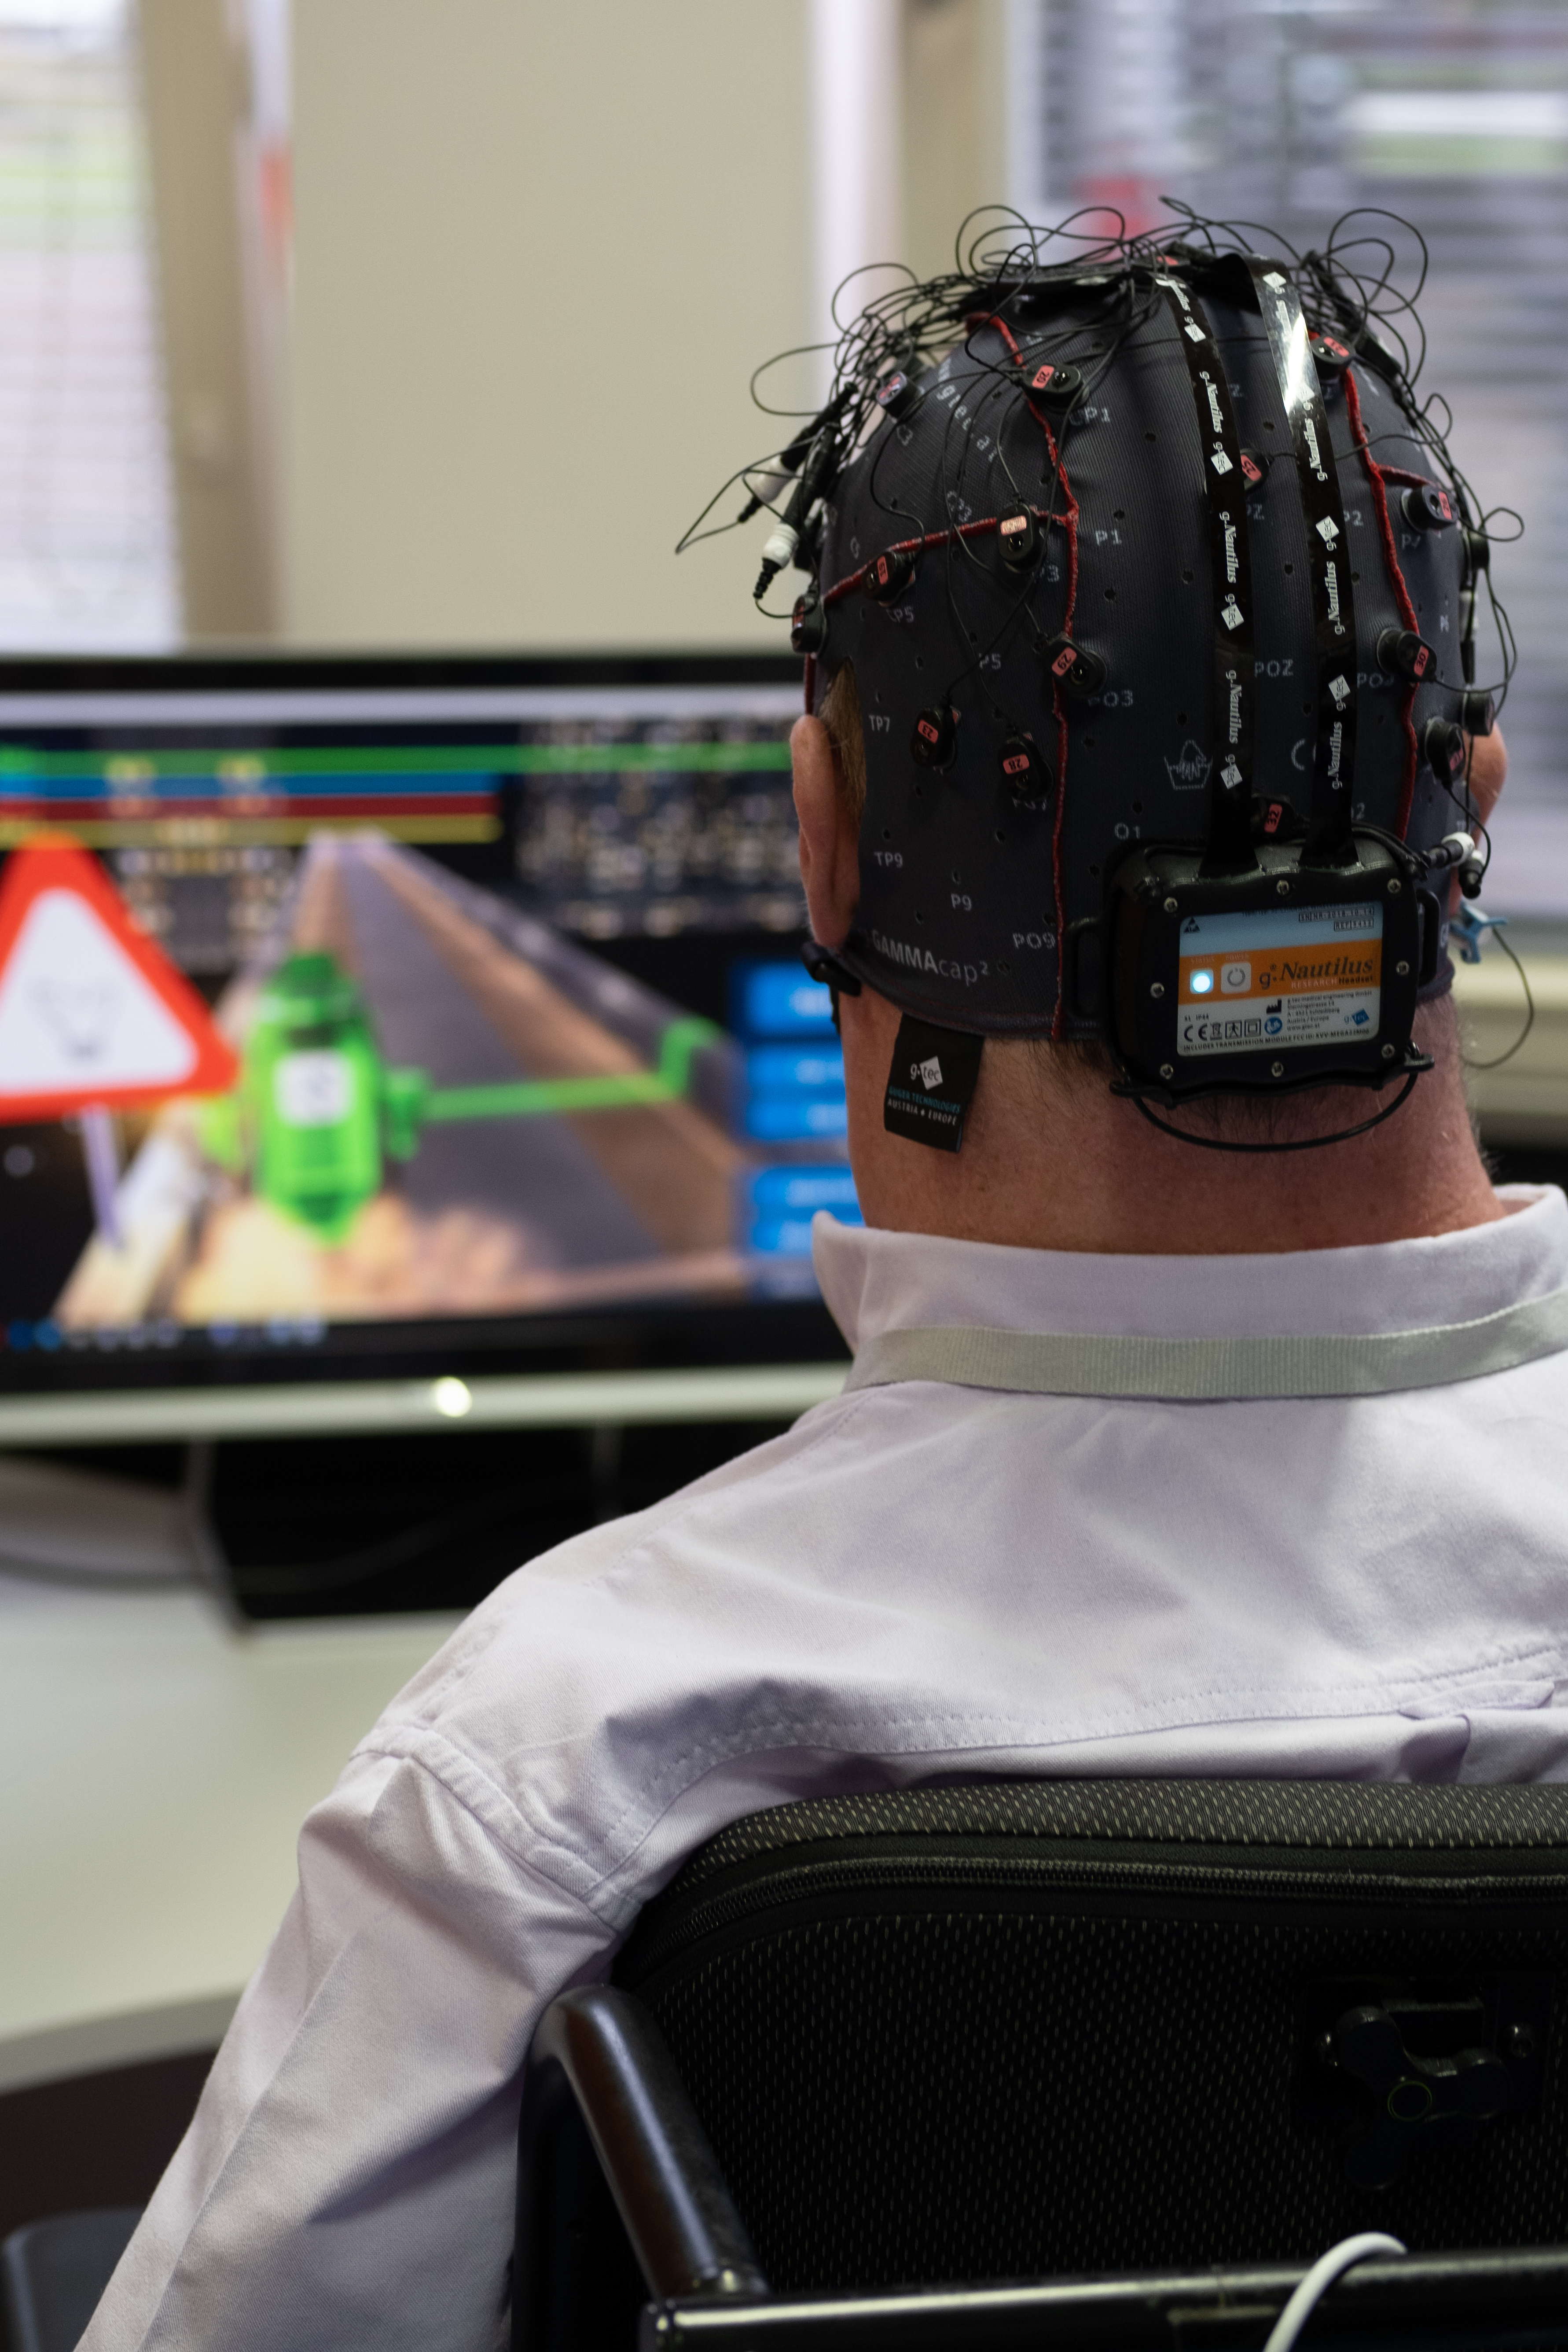 In the game 'BrainDriver', pilots steer a virtual car with their thoughts using a brain-computer interface. © ETH Zurich / Maximilian Wührer